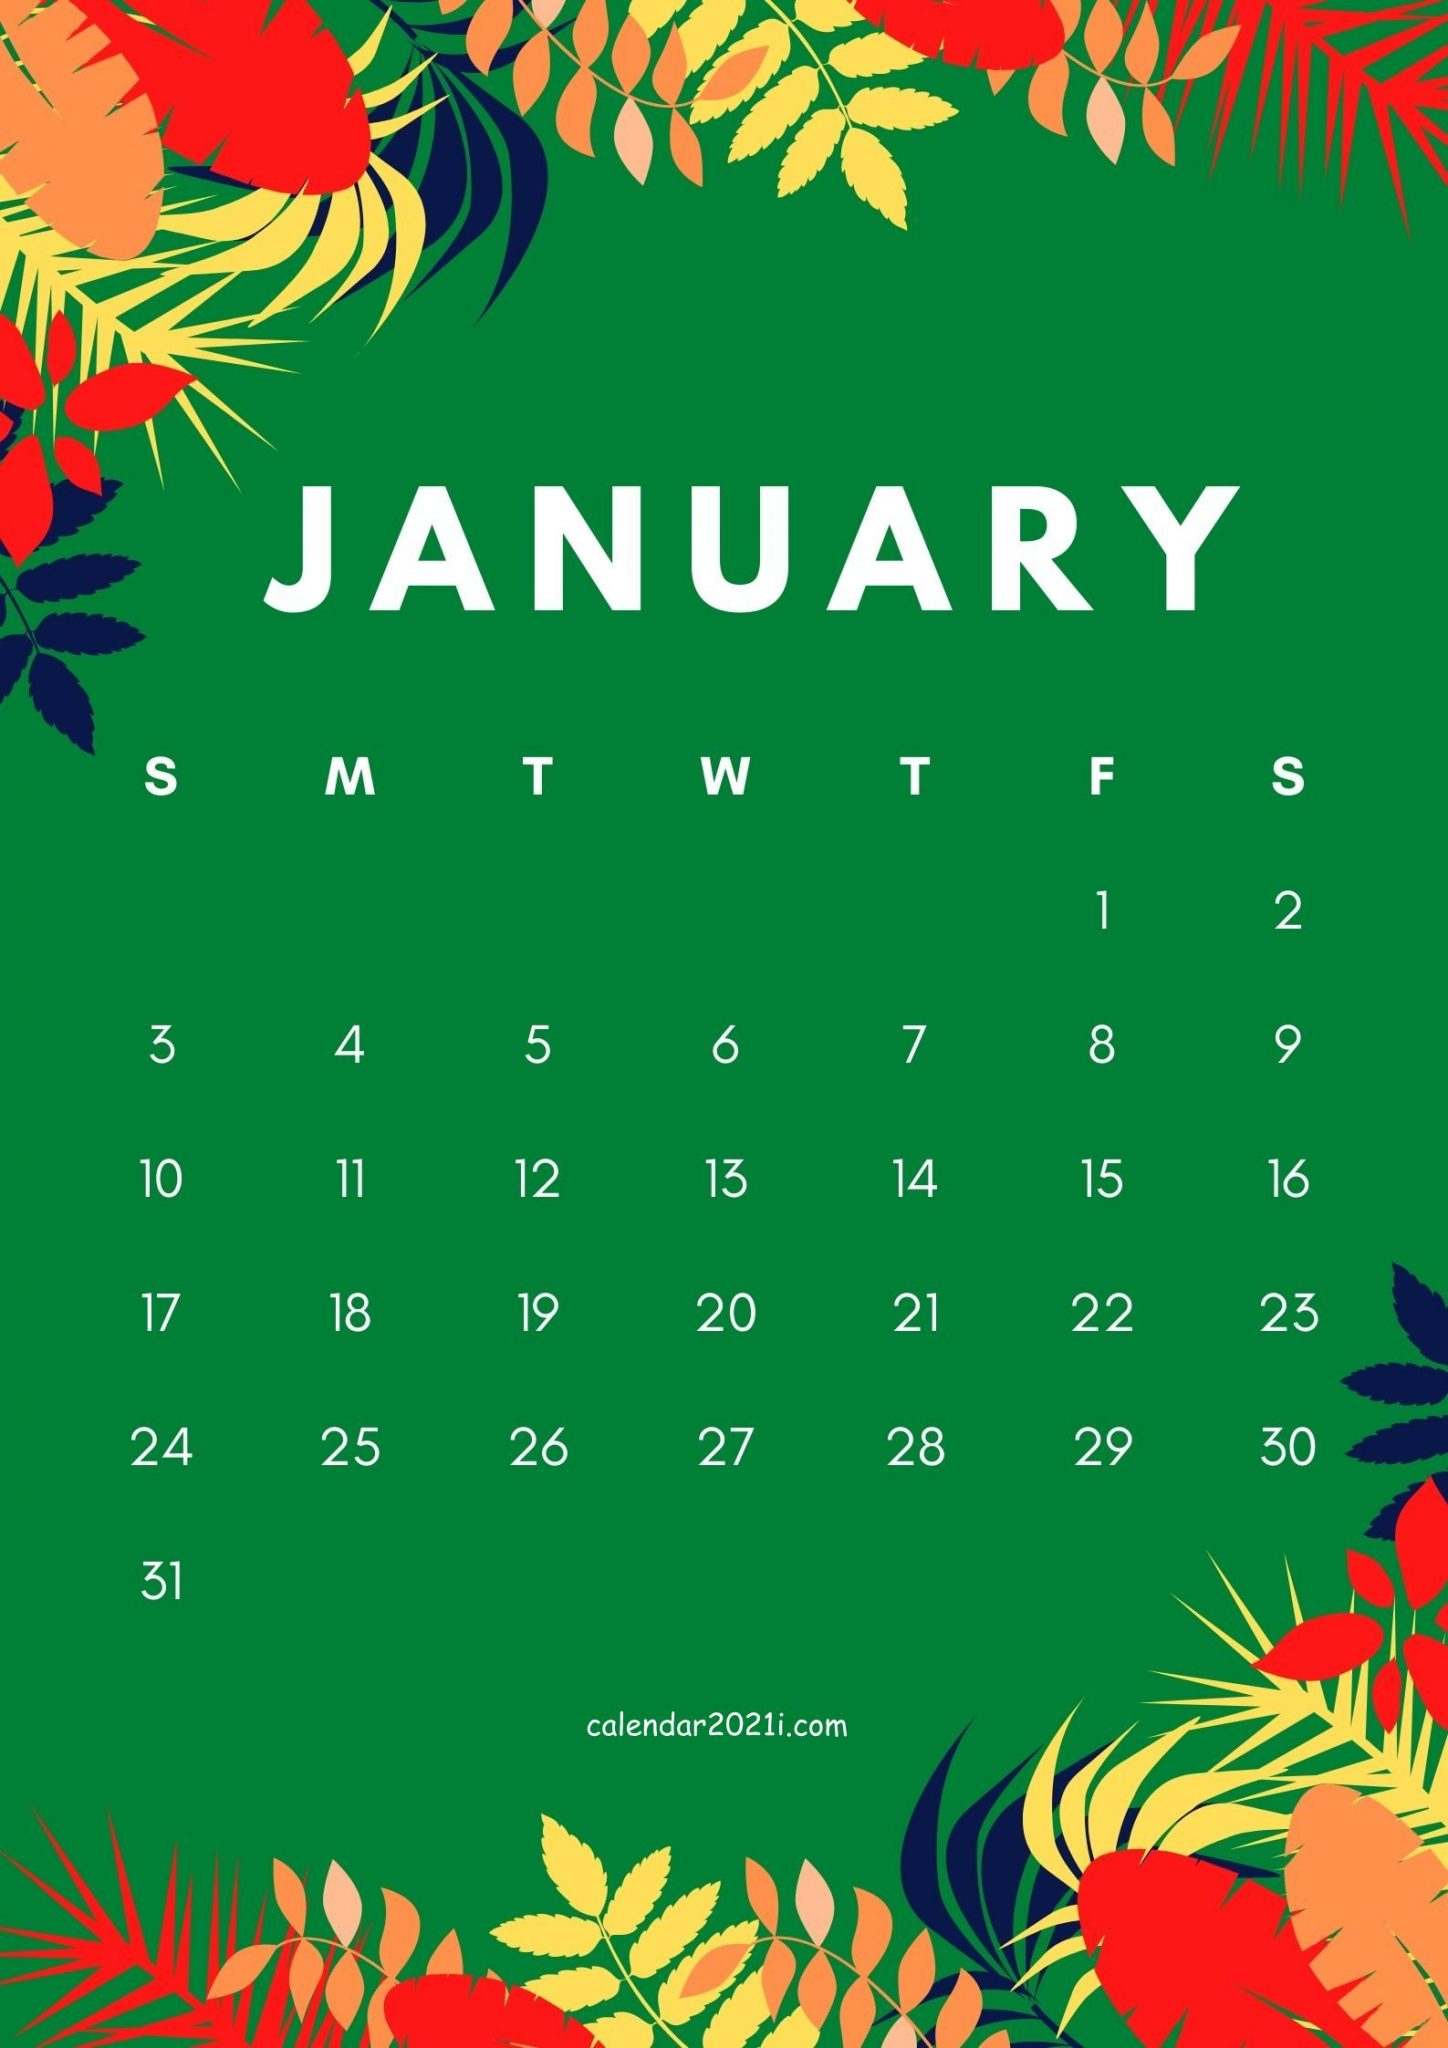 Free January 2021 Floral Calendar